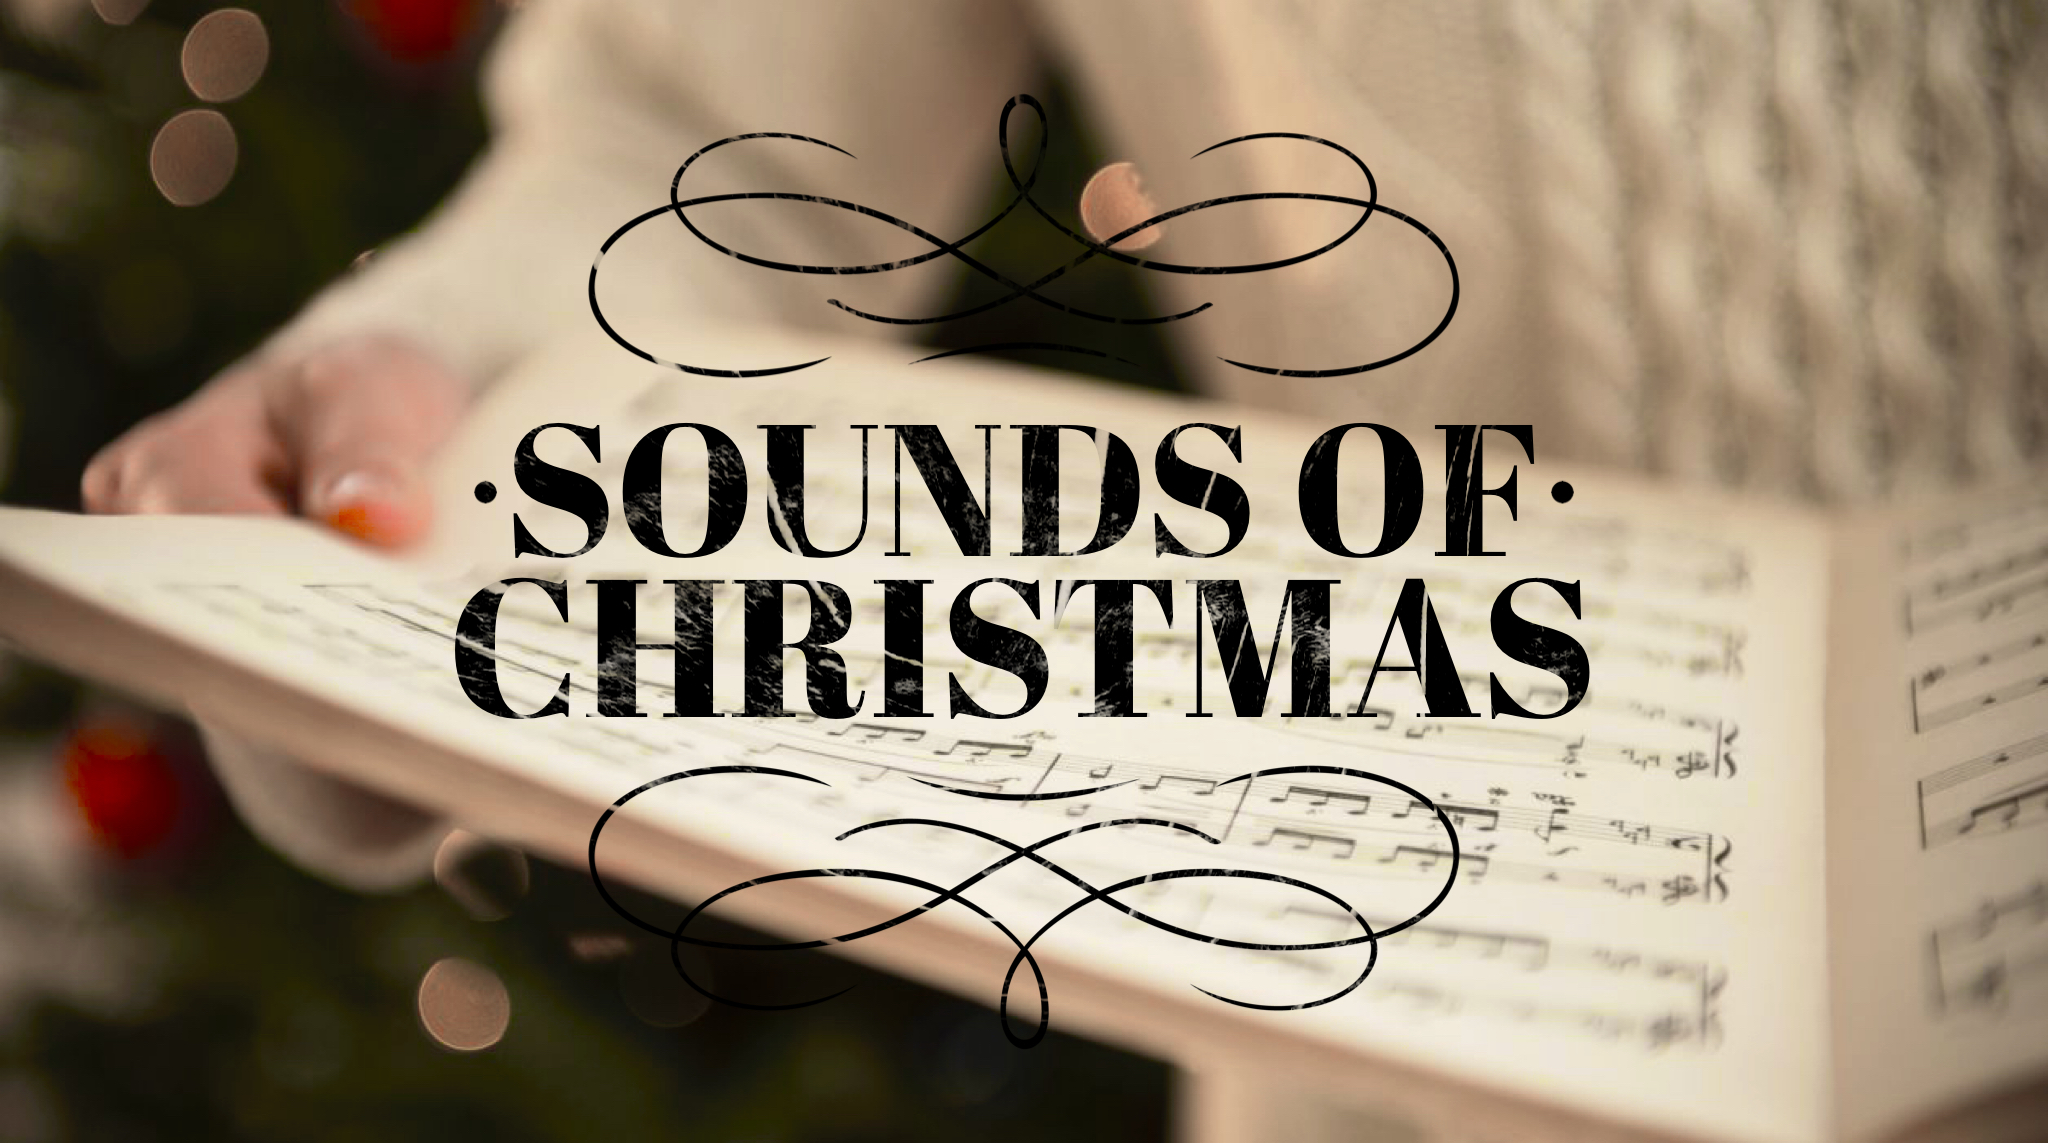 SoundsOfChristmas.jpg